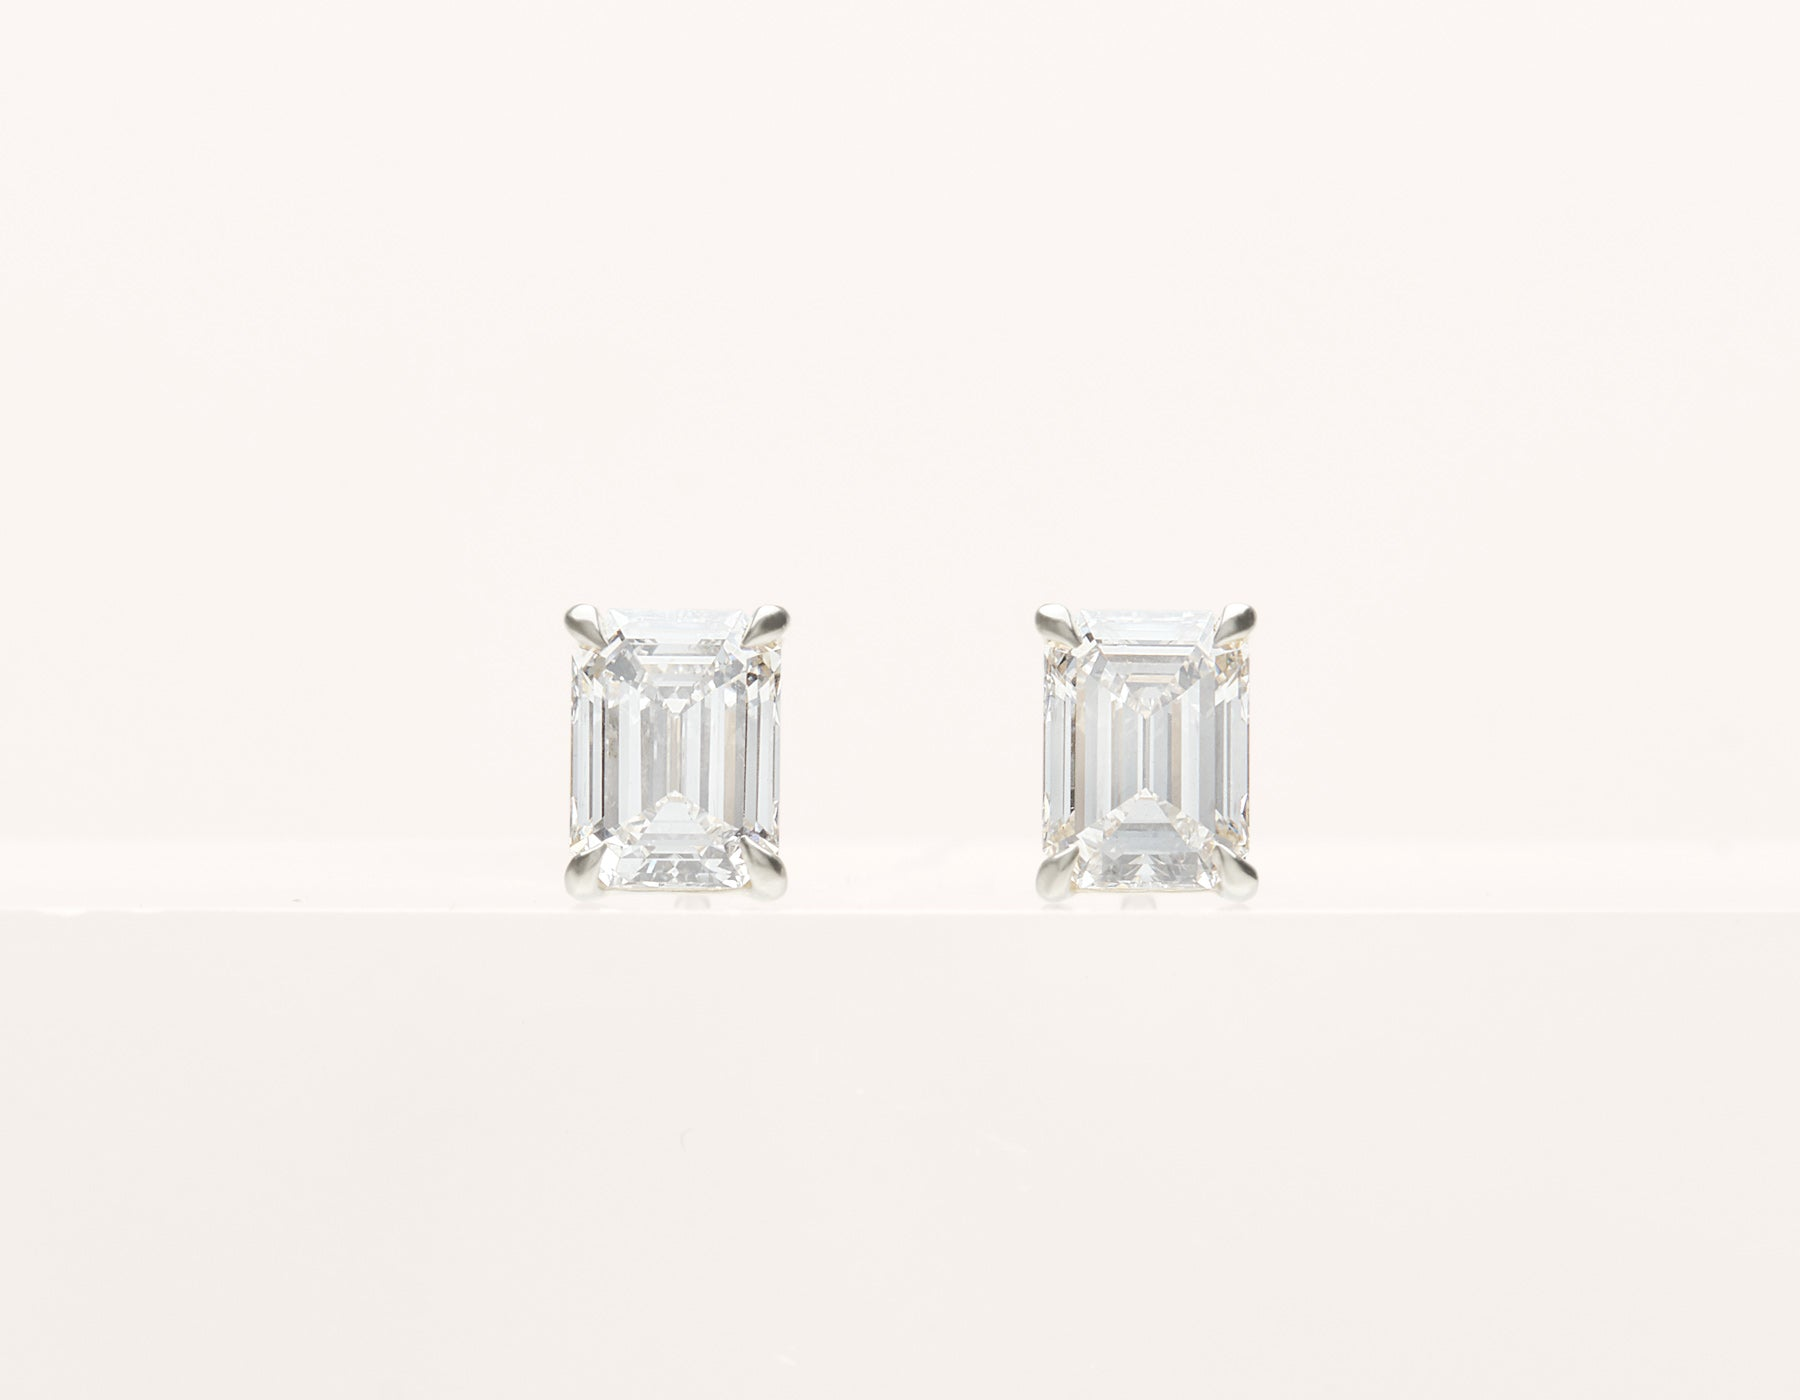 simple classic 18k solid gold 1.0 ct Emerald Diamond Studs earring by Vrai and Oro, 14K White Gold